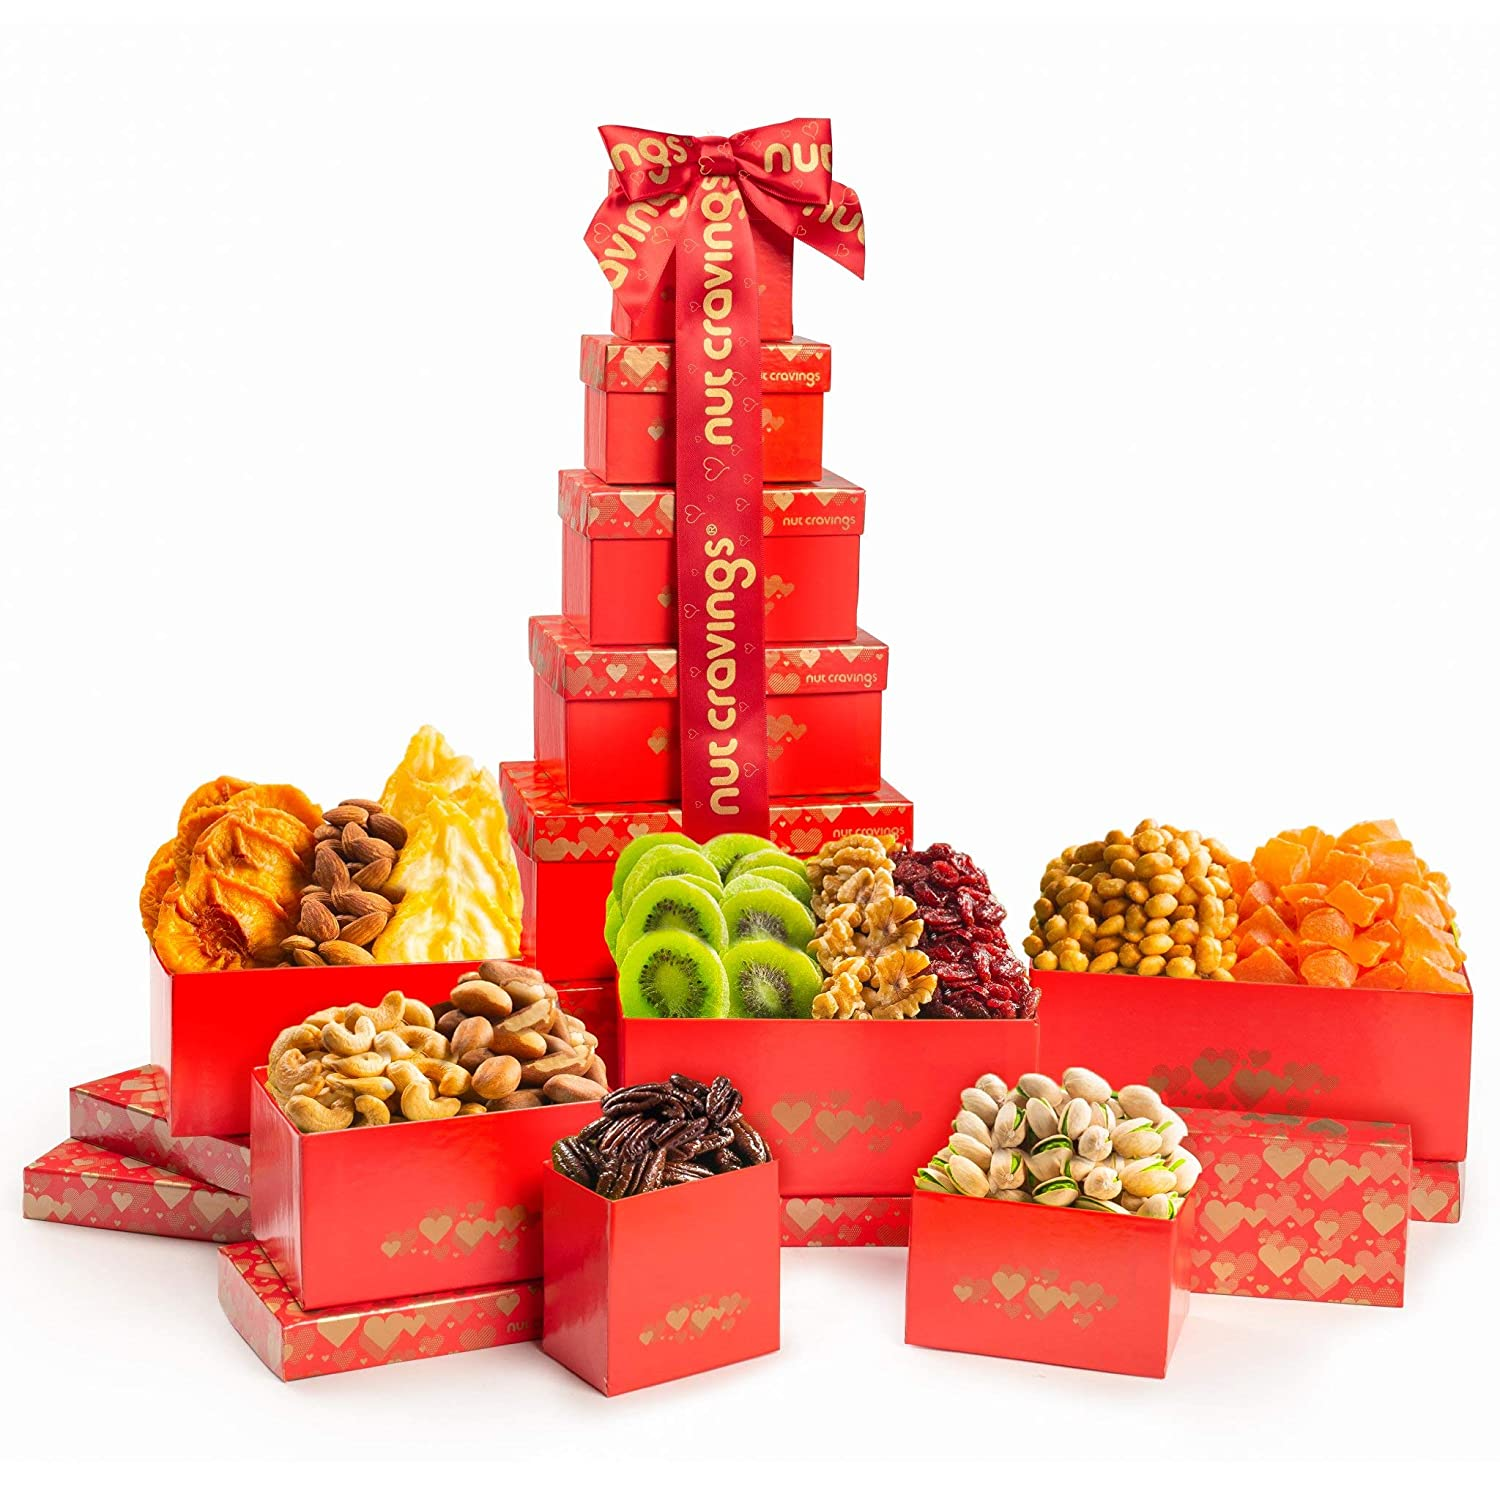 Dried Fruit Nut Gift Basket Red + 12 Piece shop Asso Tower Ribbon online shopping